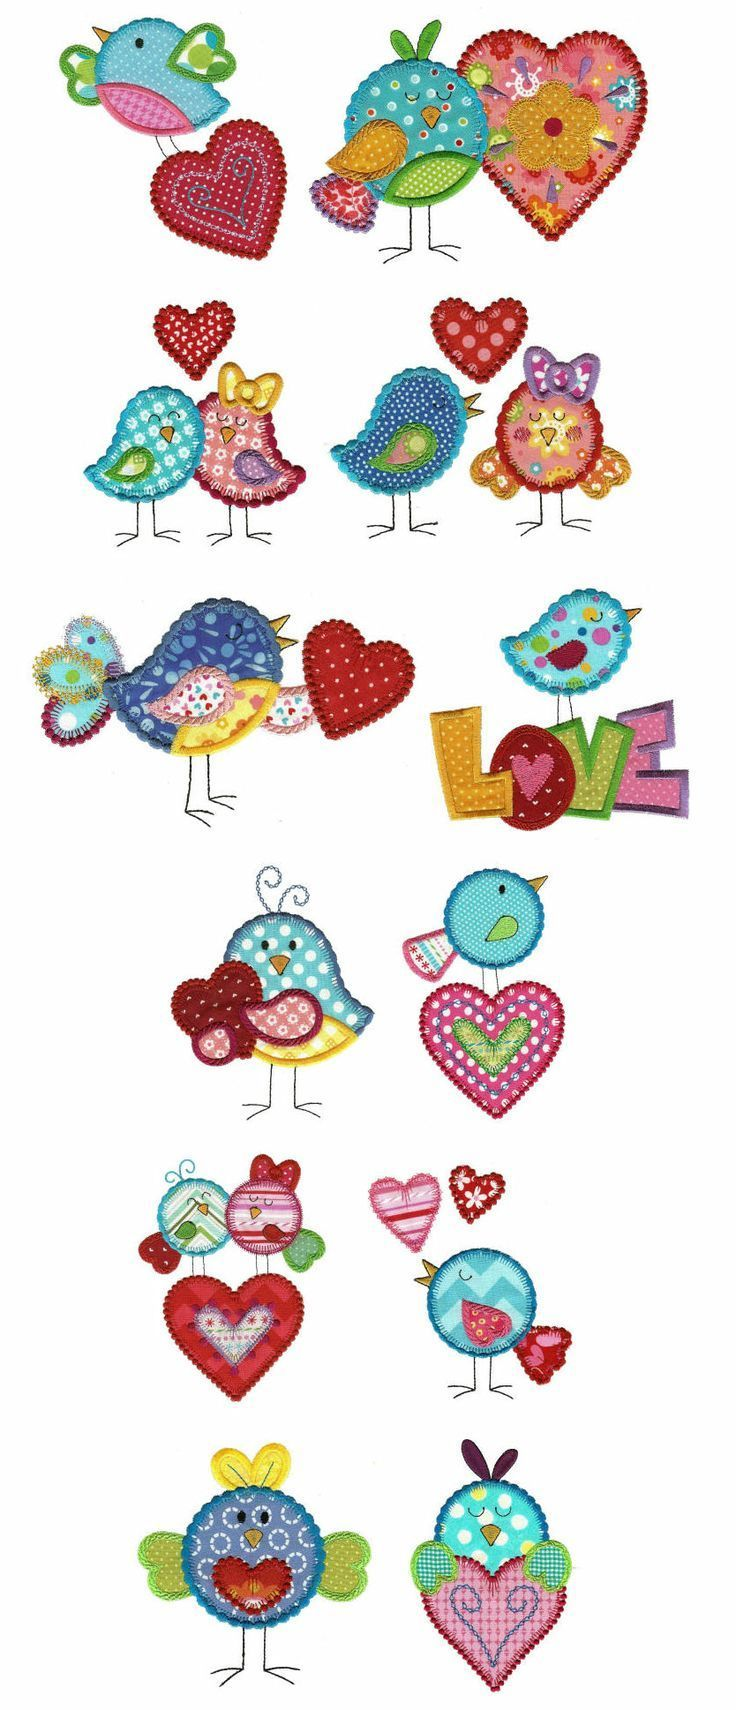 Love Birds TKOriginals DOES NOT OWN RIGHTS TO THESE IMAGES it is for ideas only